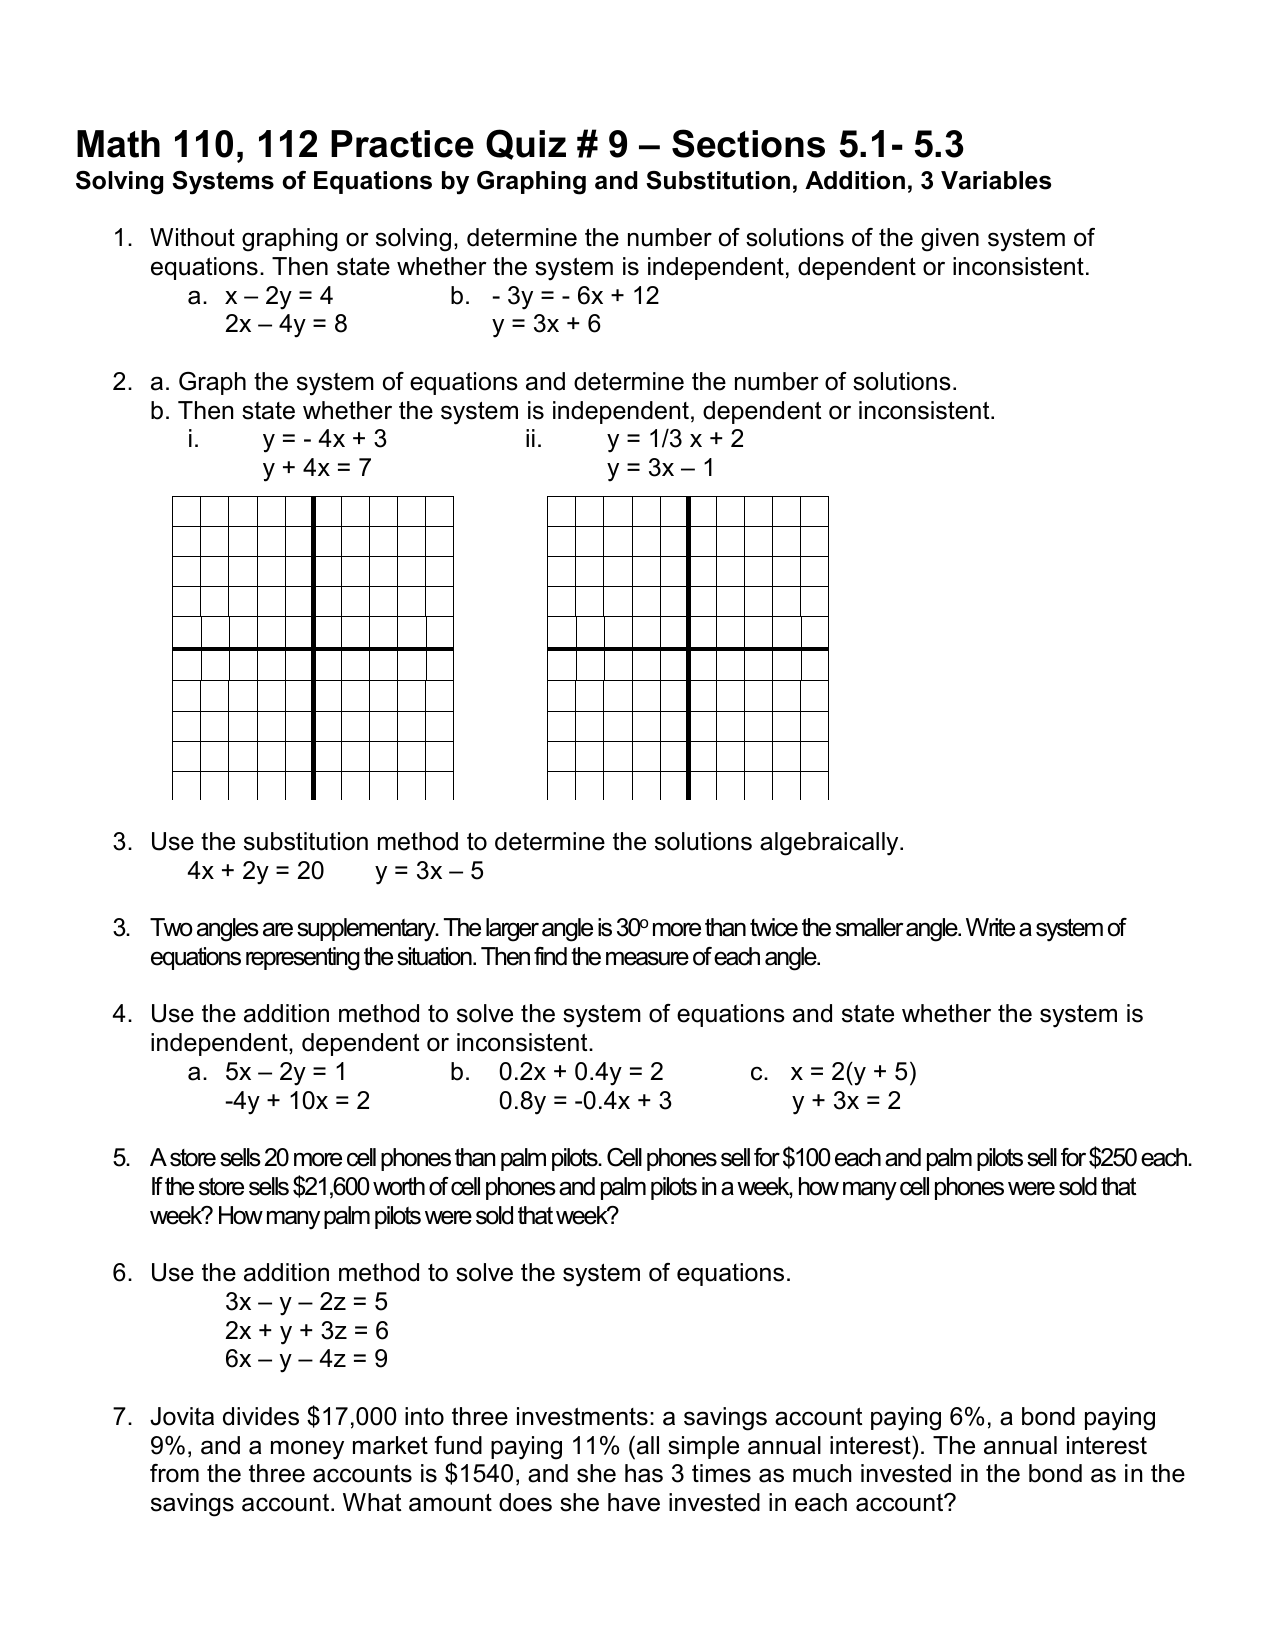 Sections 5 1 5 3 Math 110 112 Practice Quiz 9